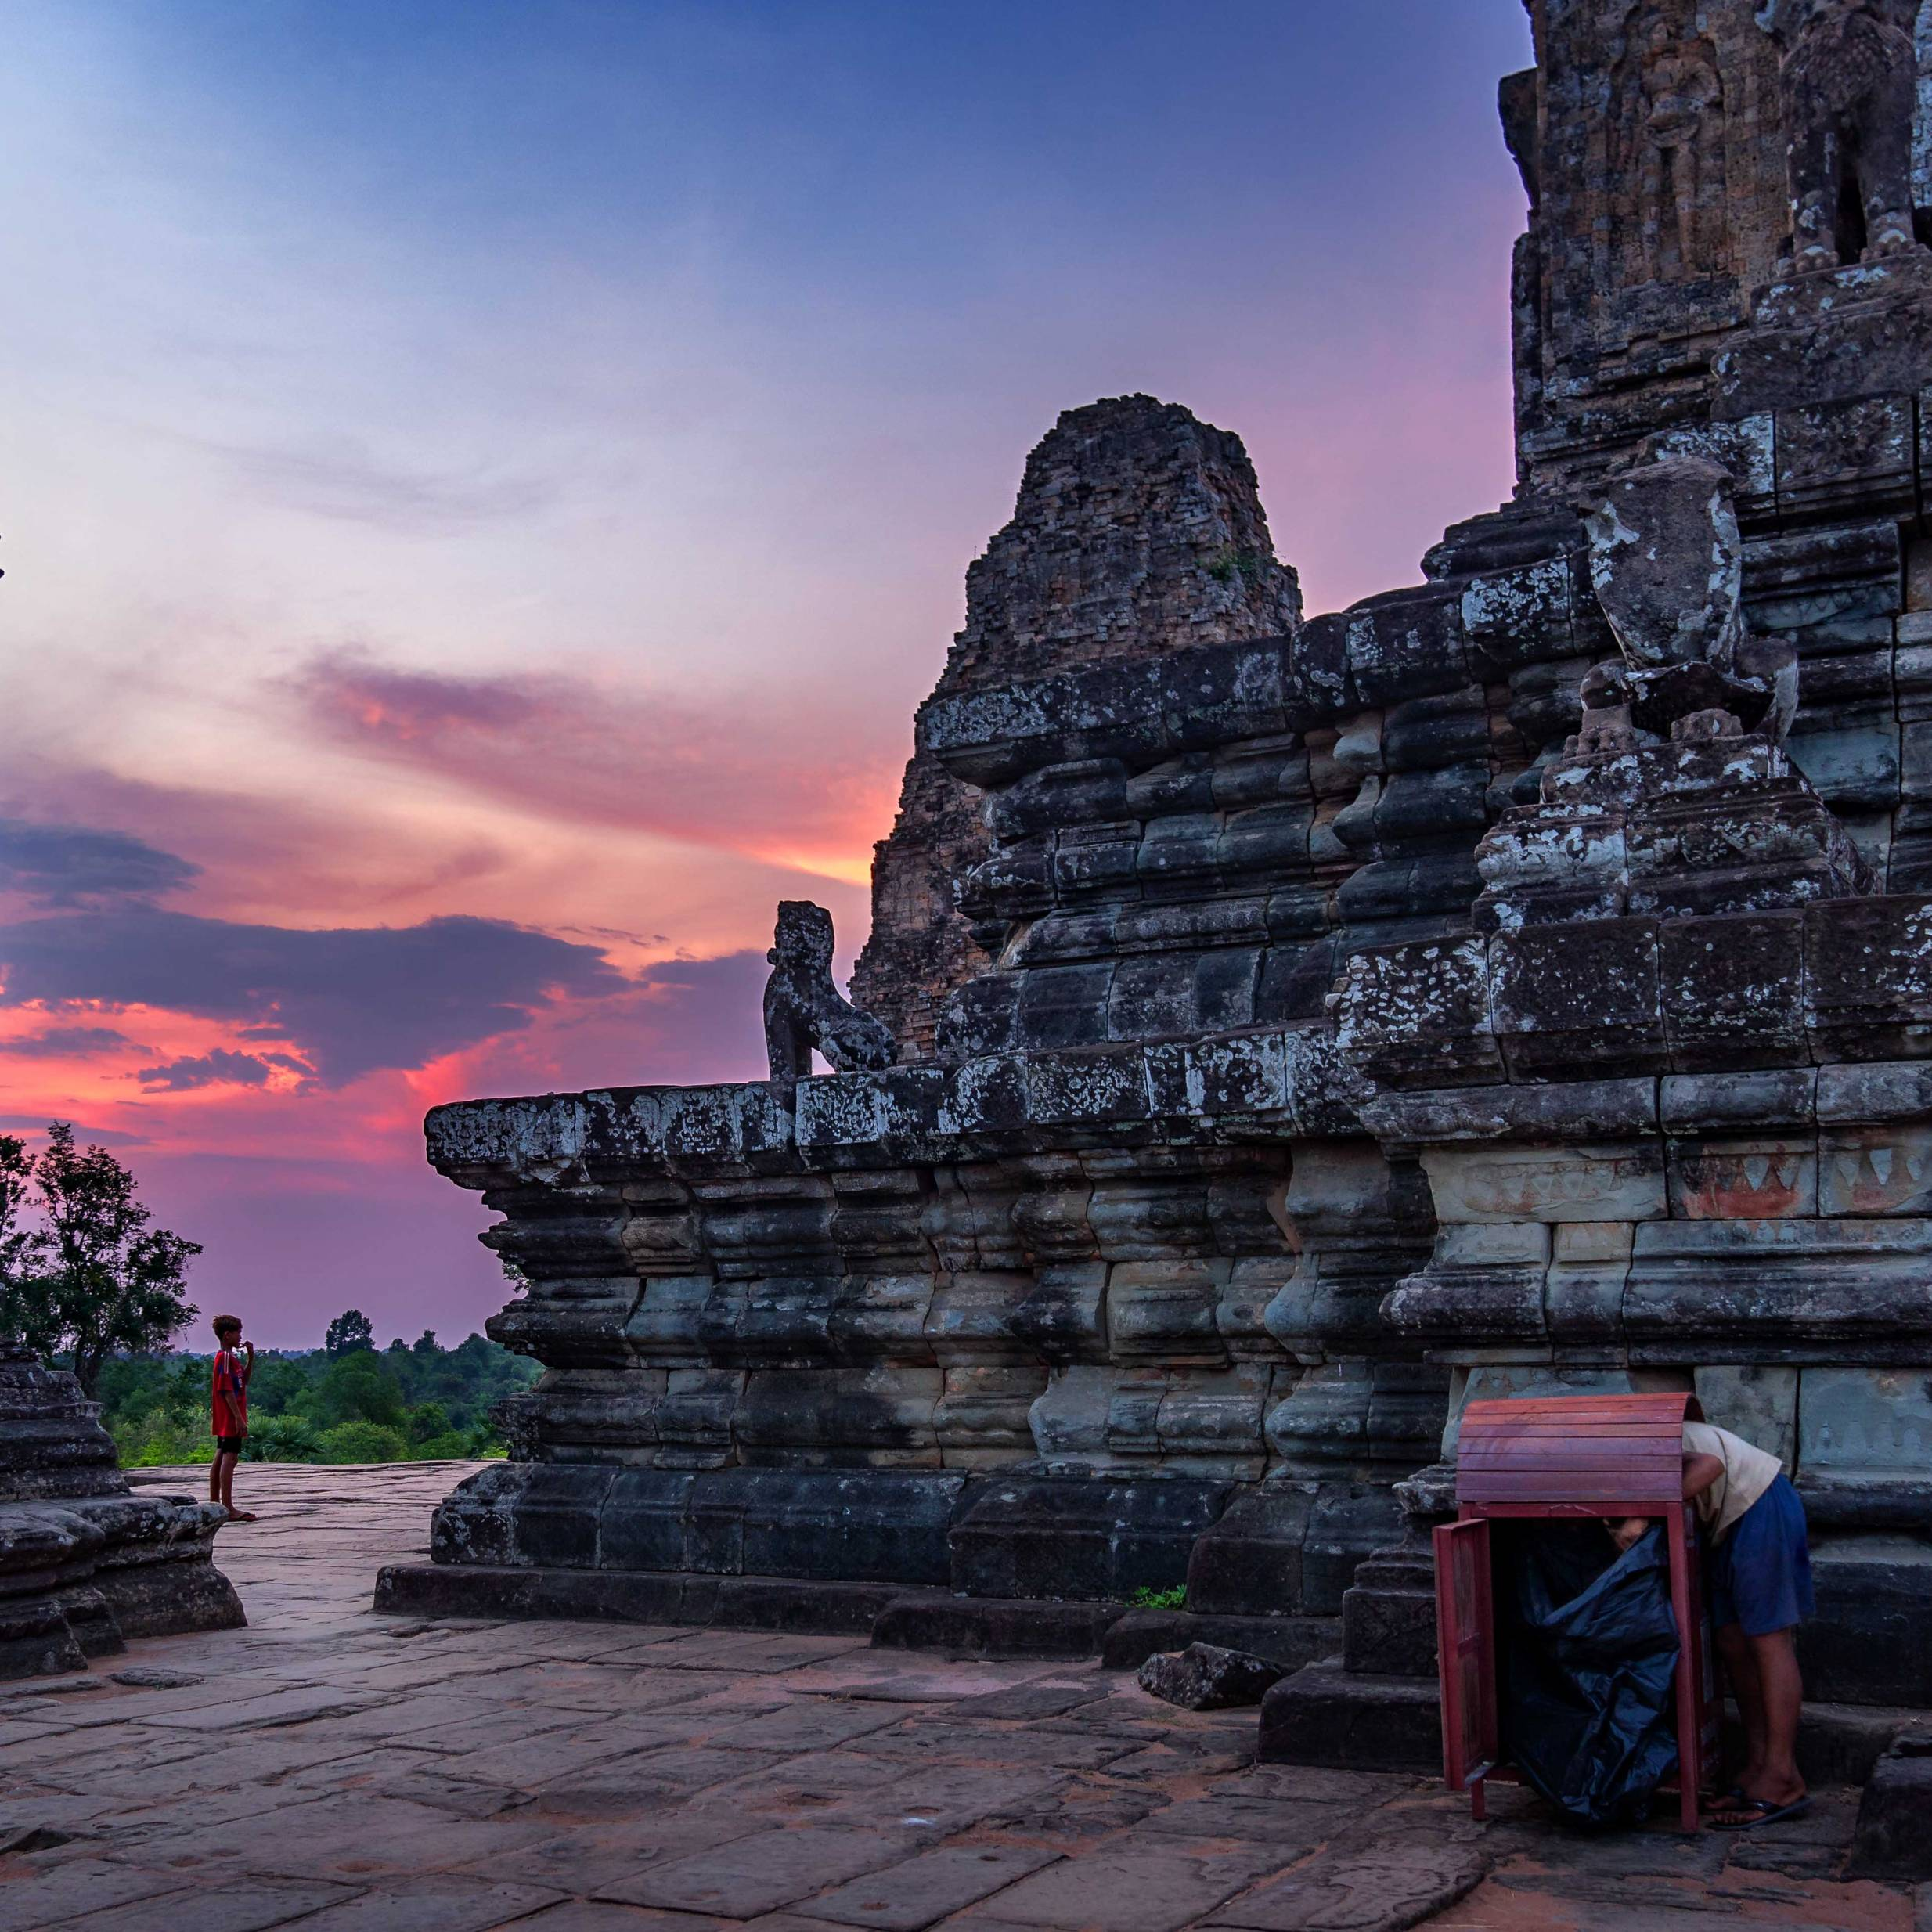 SUNSET AT EASTERN MEBON TEMPLE